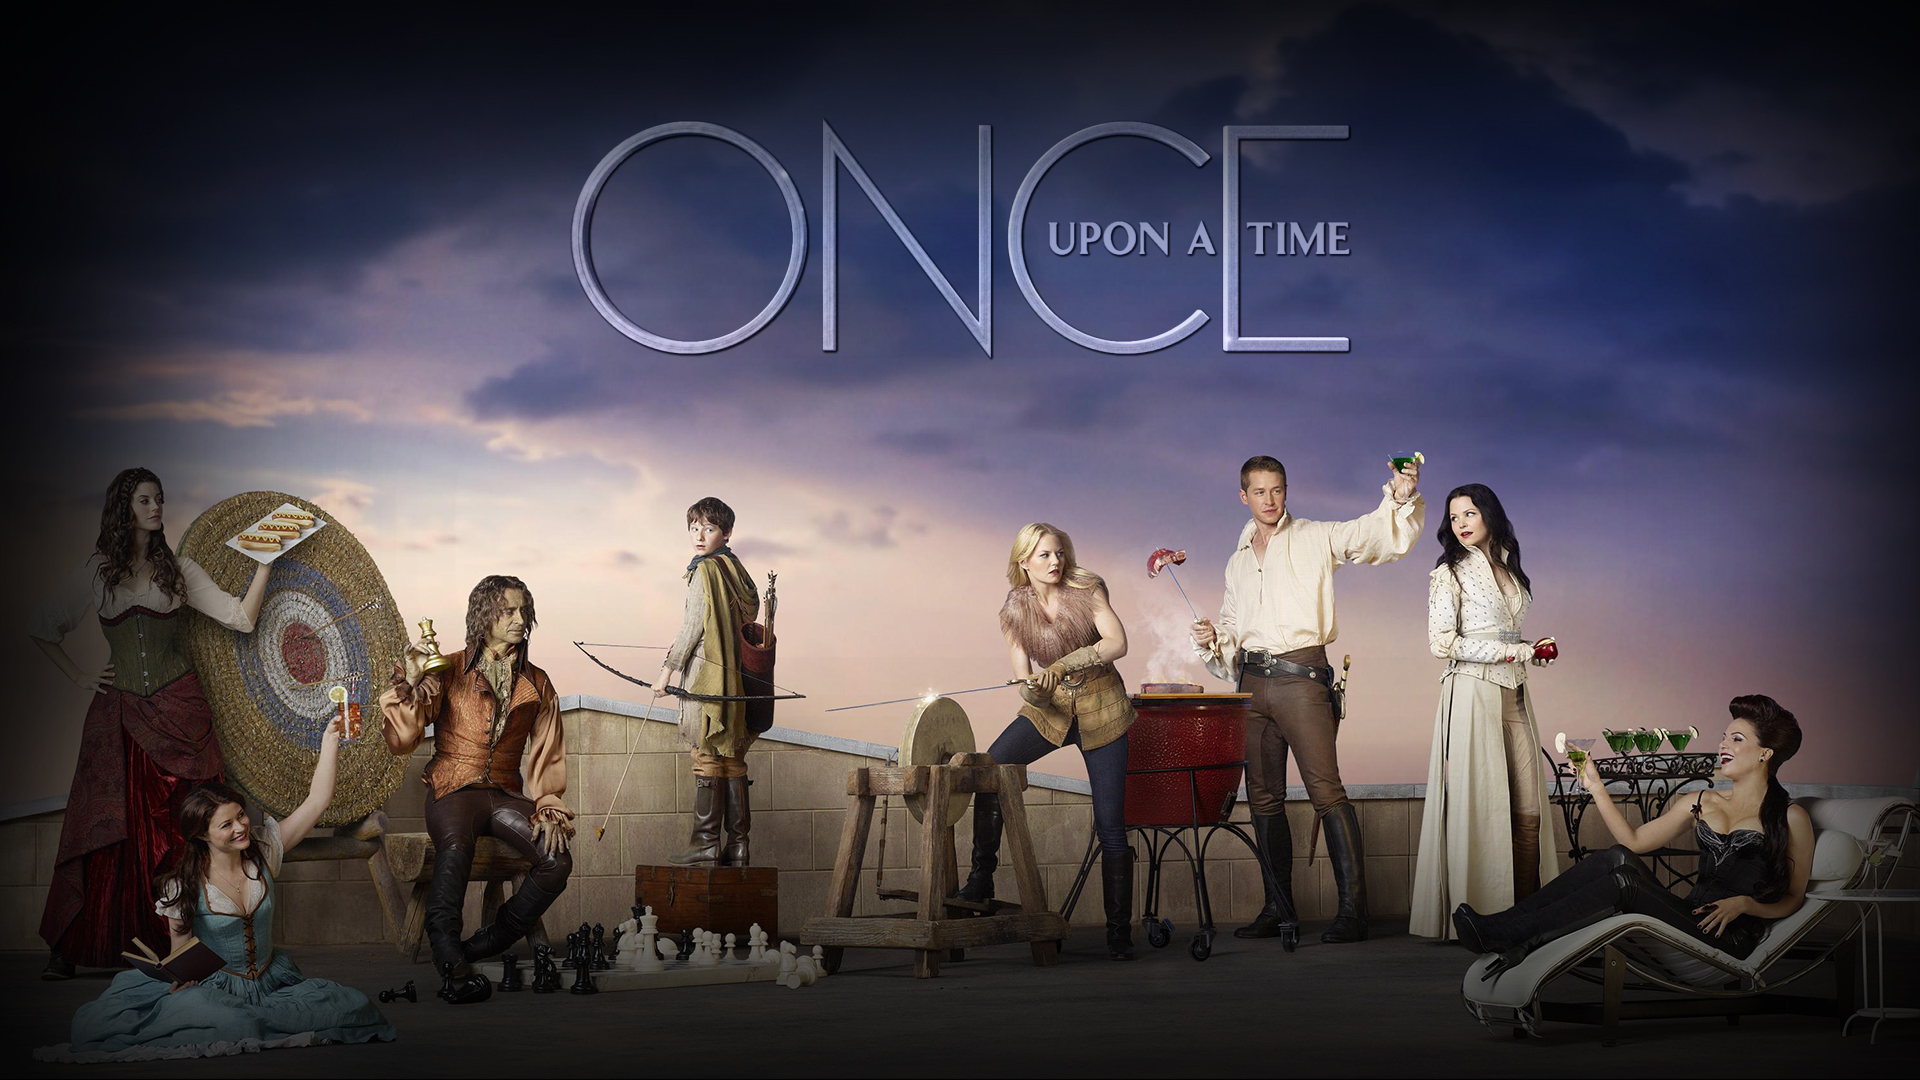 Once Upon A Time HD Wallpapers Hd 1920x1080